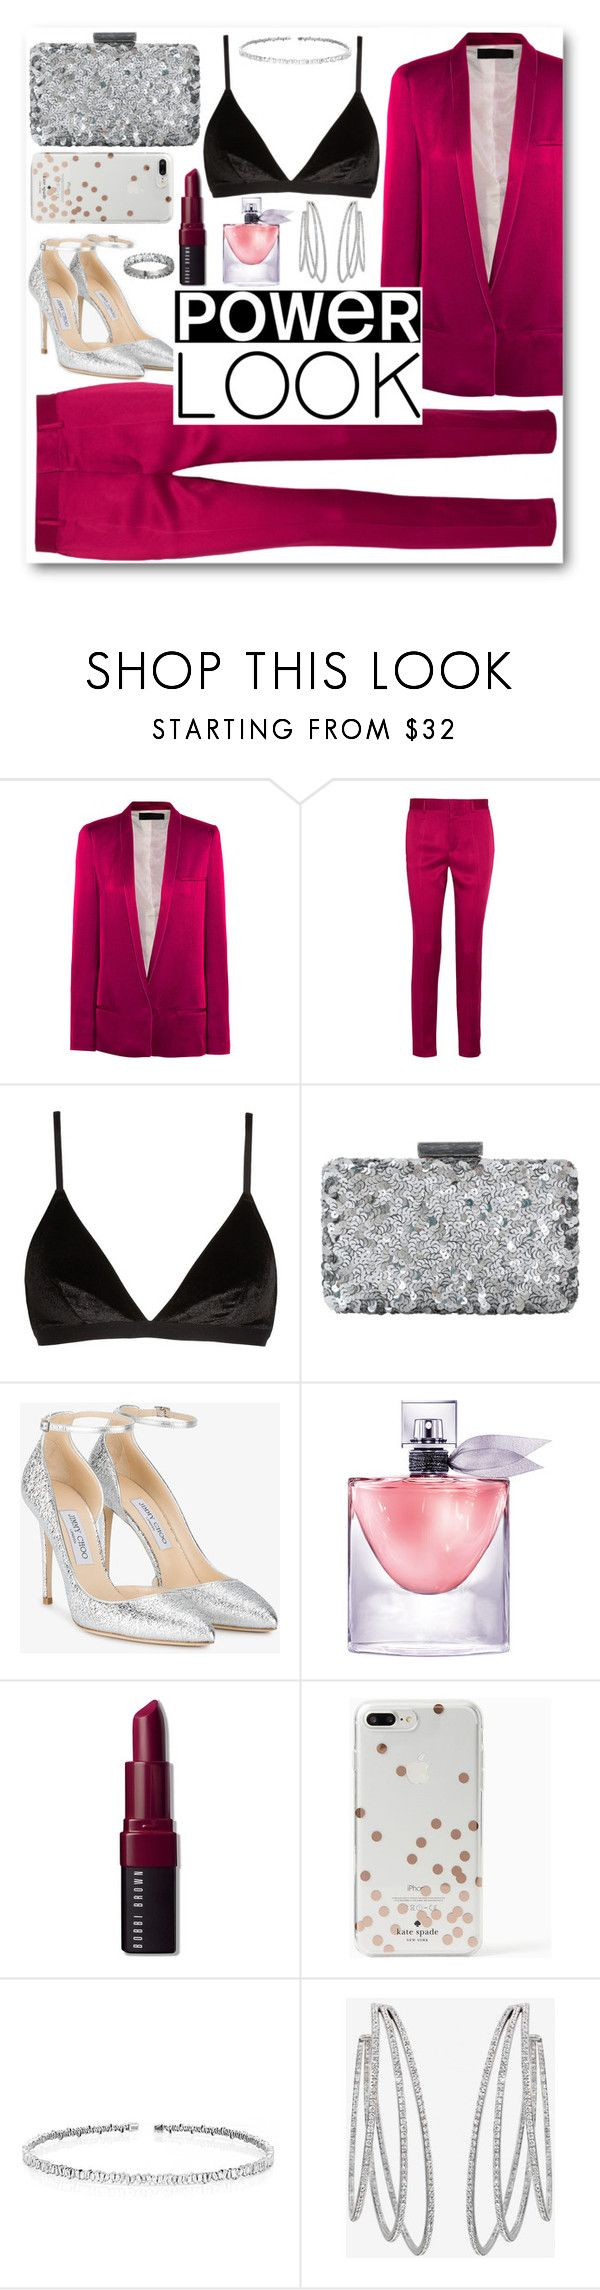 """Pink suit"" by alexa-girl2 ❤ liked on Polyvore featuring Haider Ackermann, Madewell, Oscar de la Renta, Jimmy Choo, Lancôme, Bobbi Brown Cosmetics, Kate Spade, Suzanne Kalan, Messika and Cartier"